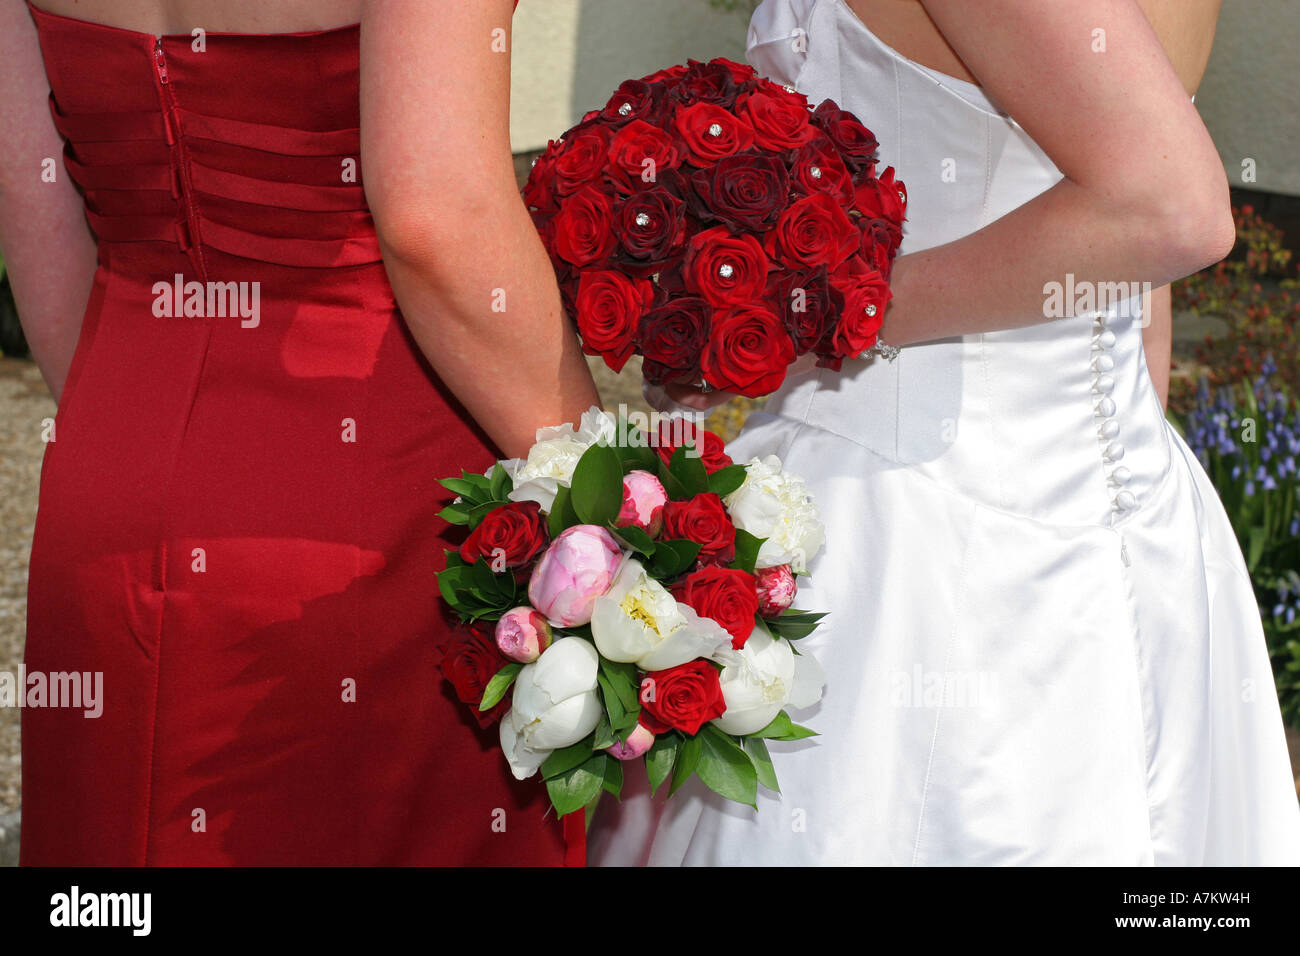 Red Flowers On The White Dress Stock Photos Red Flowers On The